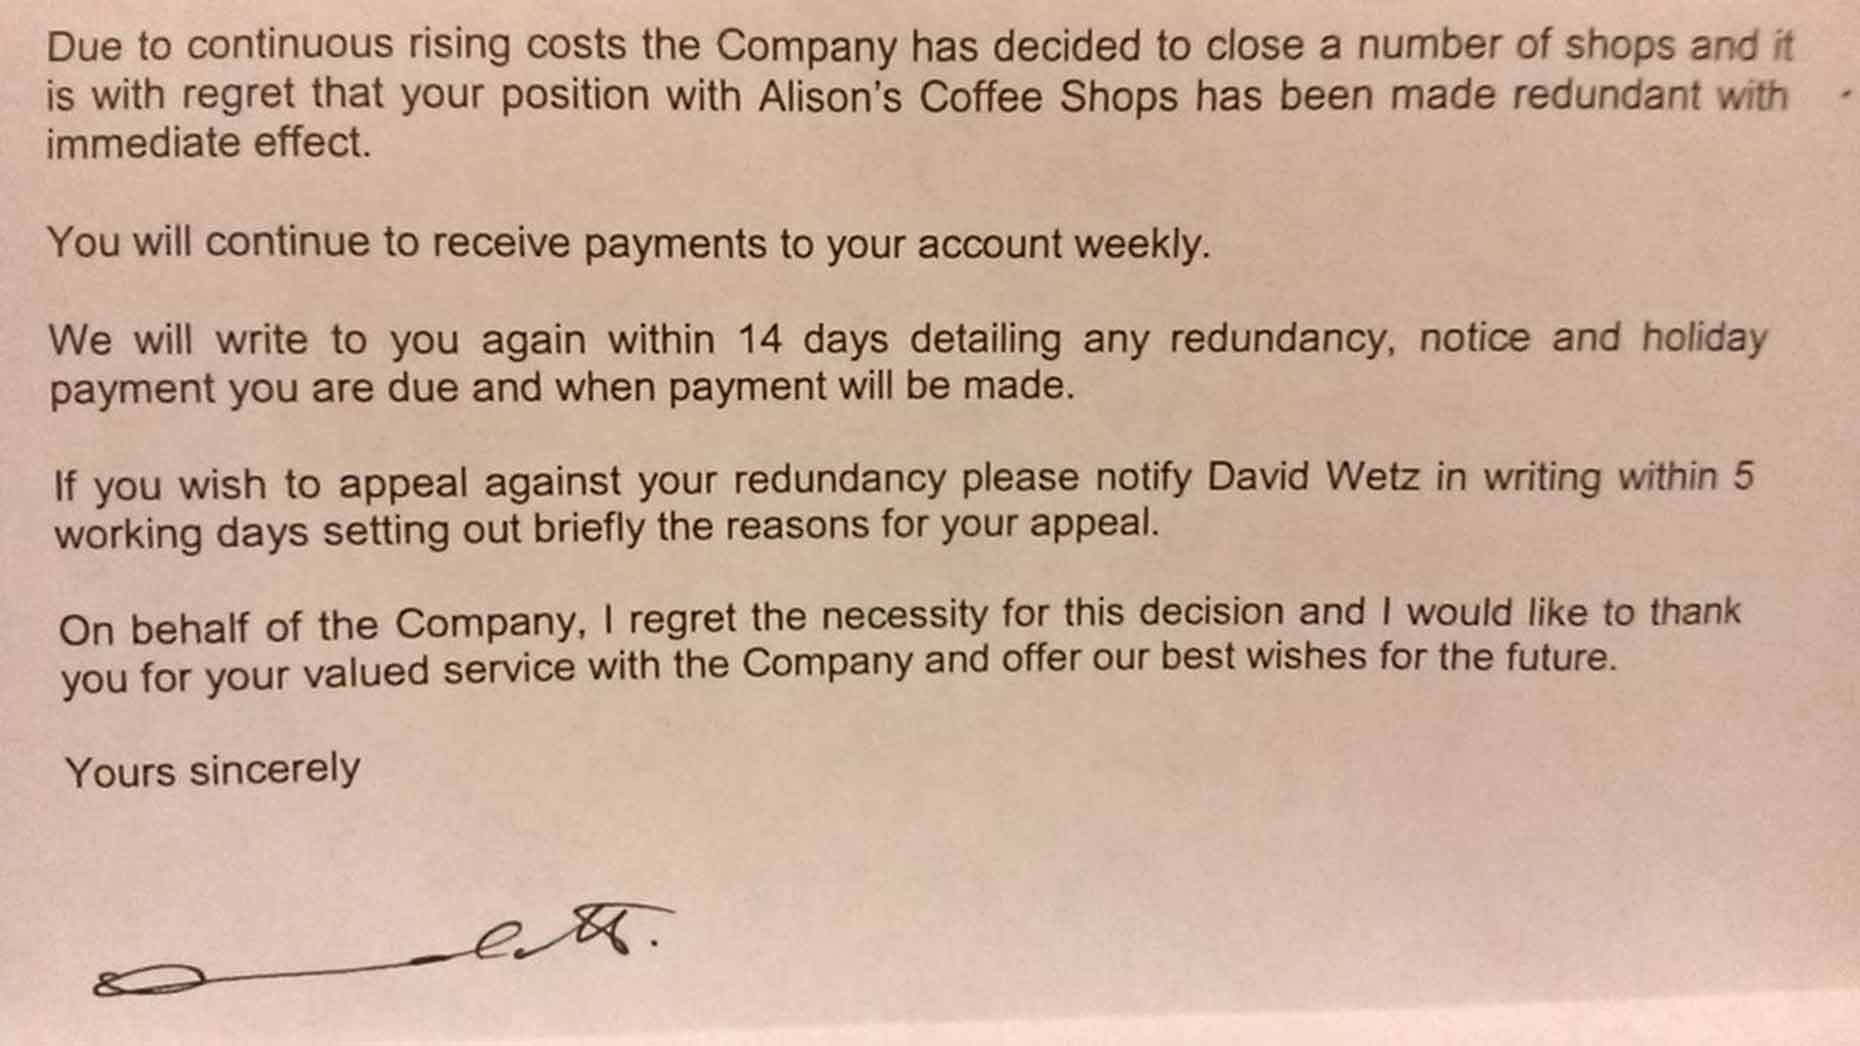 Cooplands employee received a letter to confirm they had been made redundant